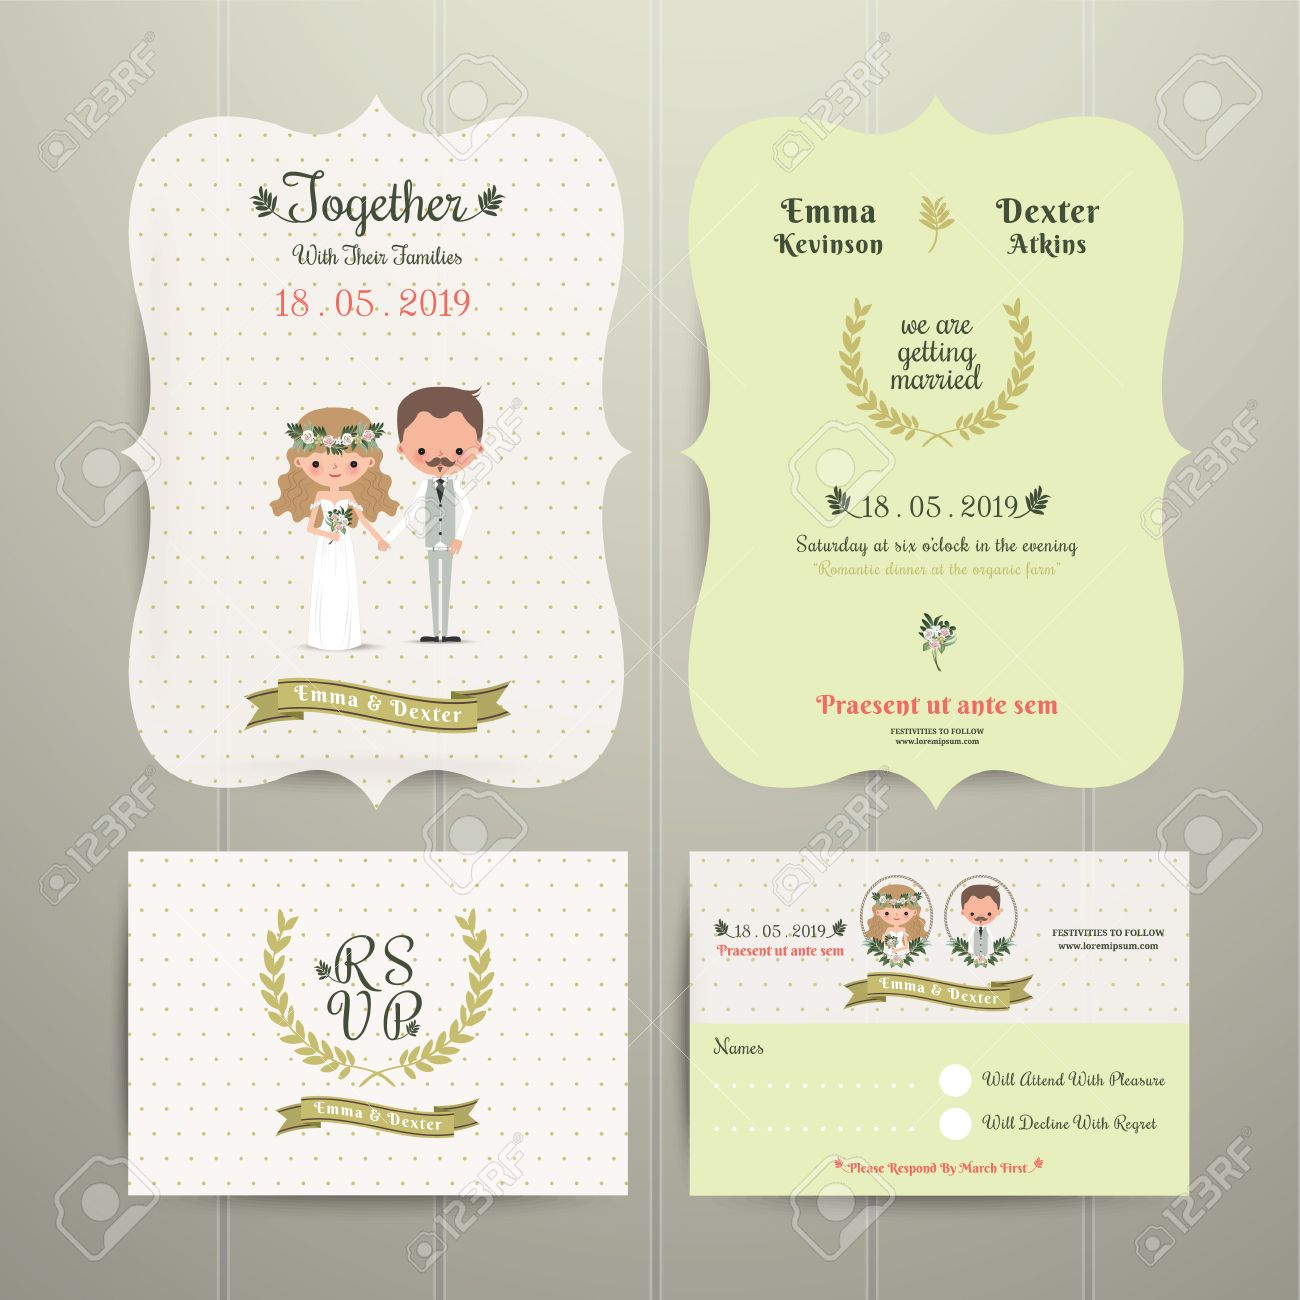 Bride Groom Cartoon Romantic Farm Wedding Invitation Card And